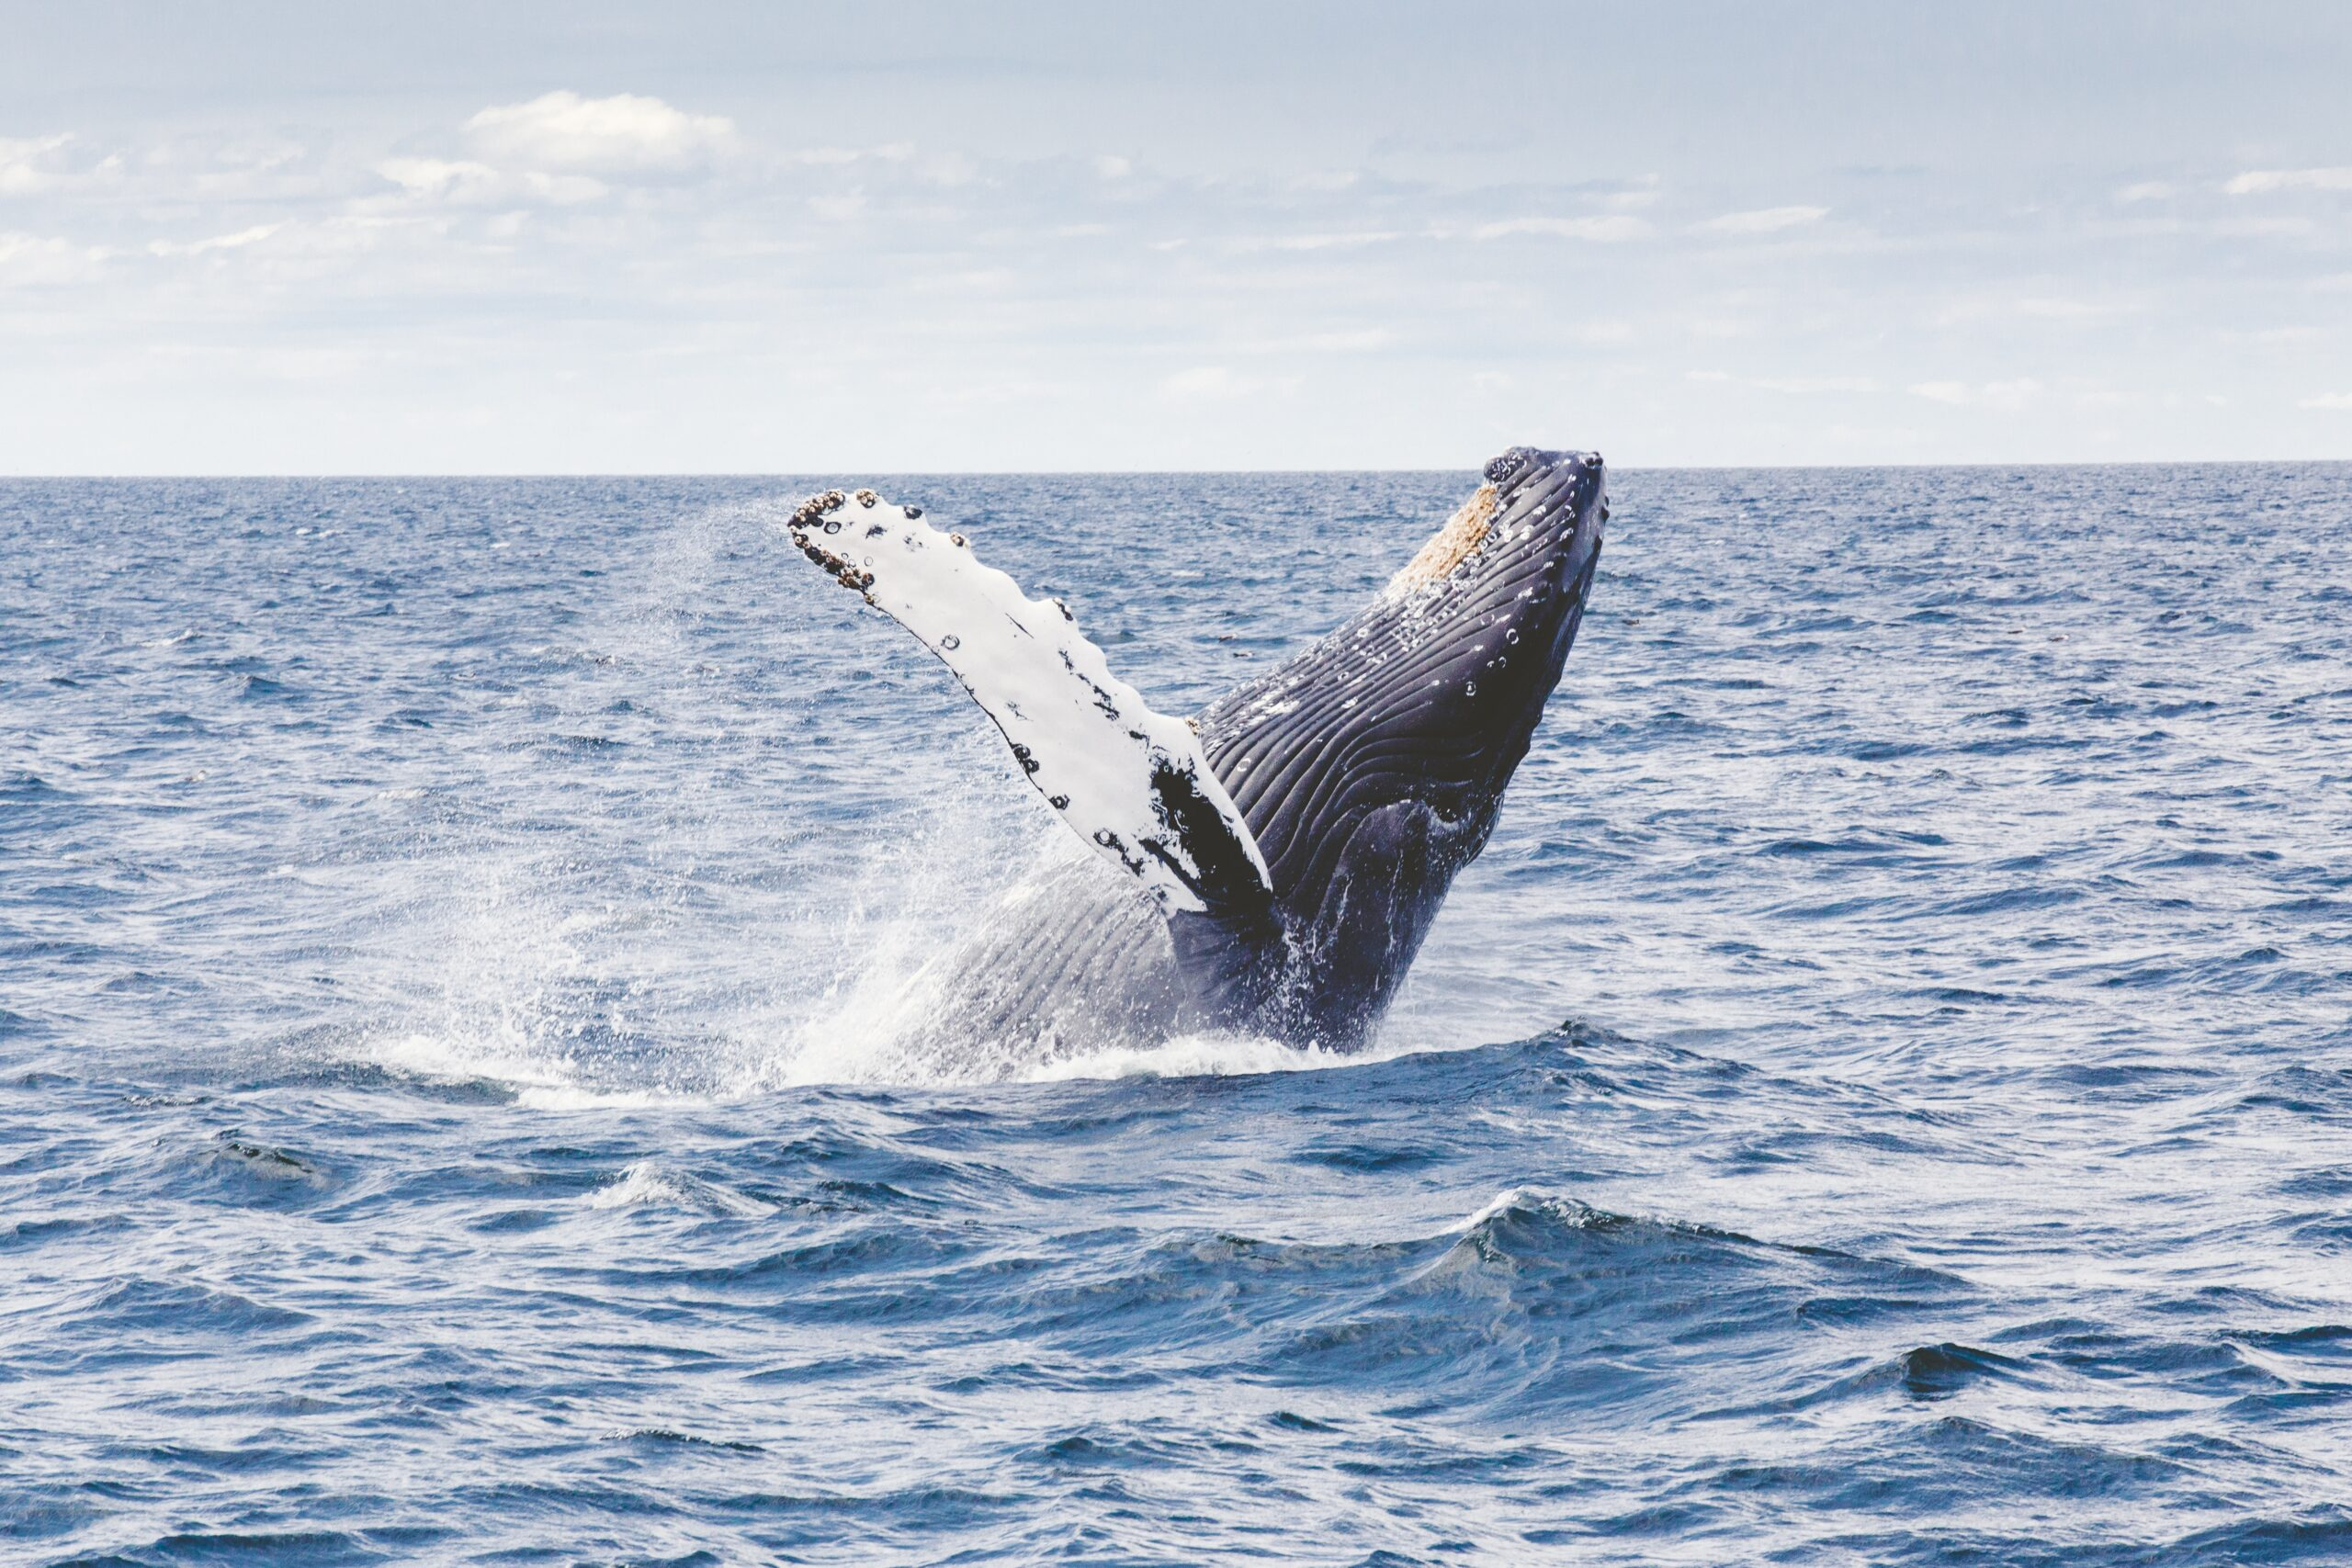 Federal Rule Proposed to Protect Pacific Humpback Whale Habitat